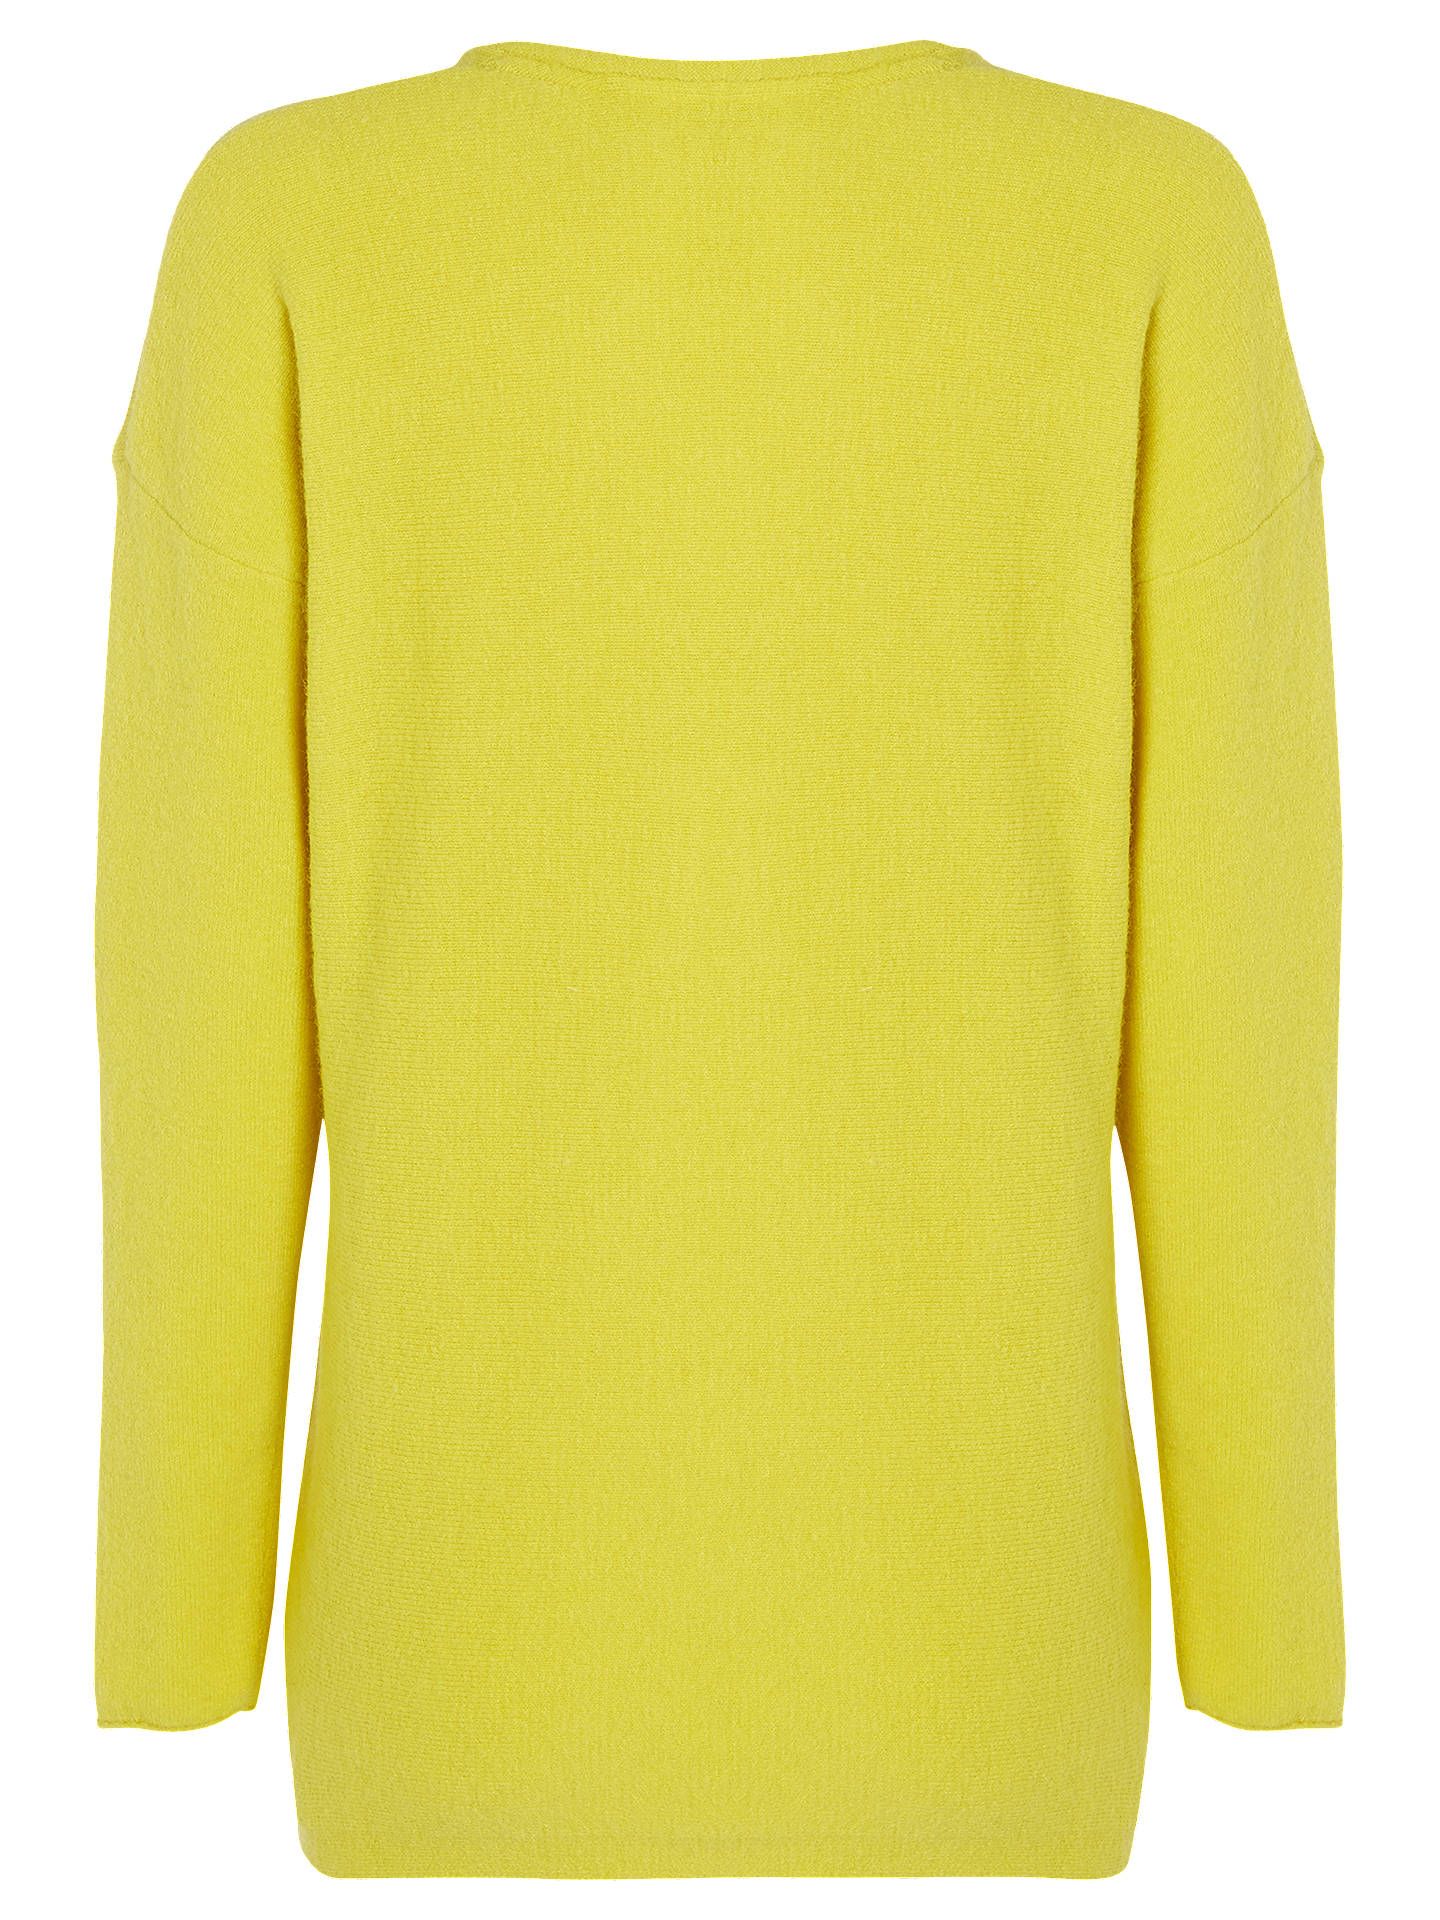 BuyWhite Stuff Hinterland V Neck Jumper, Citrus, 6 Online at johnlewis.com